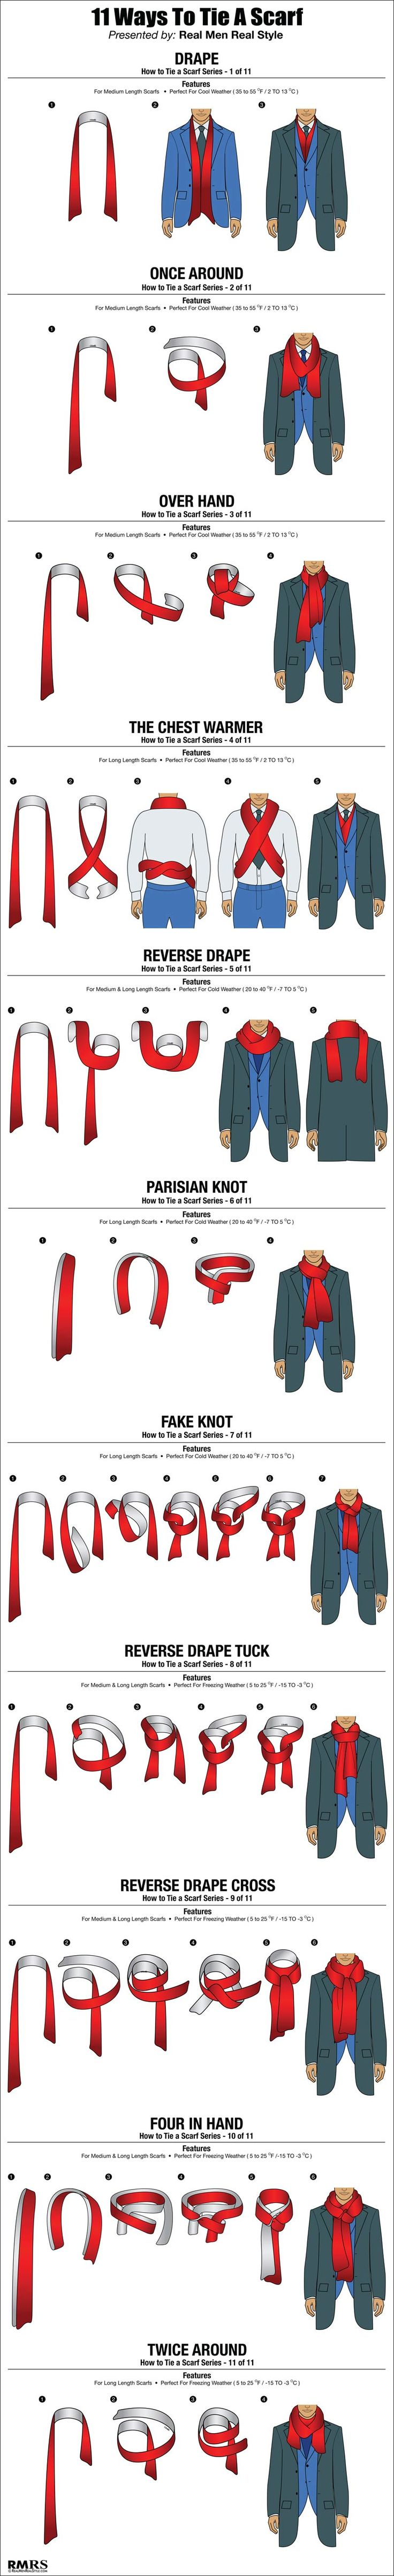 How To Tie A Scarf Chart – 11 Masculine Ways To Tie Scarves (via @Antonio Centeno)